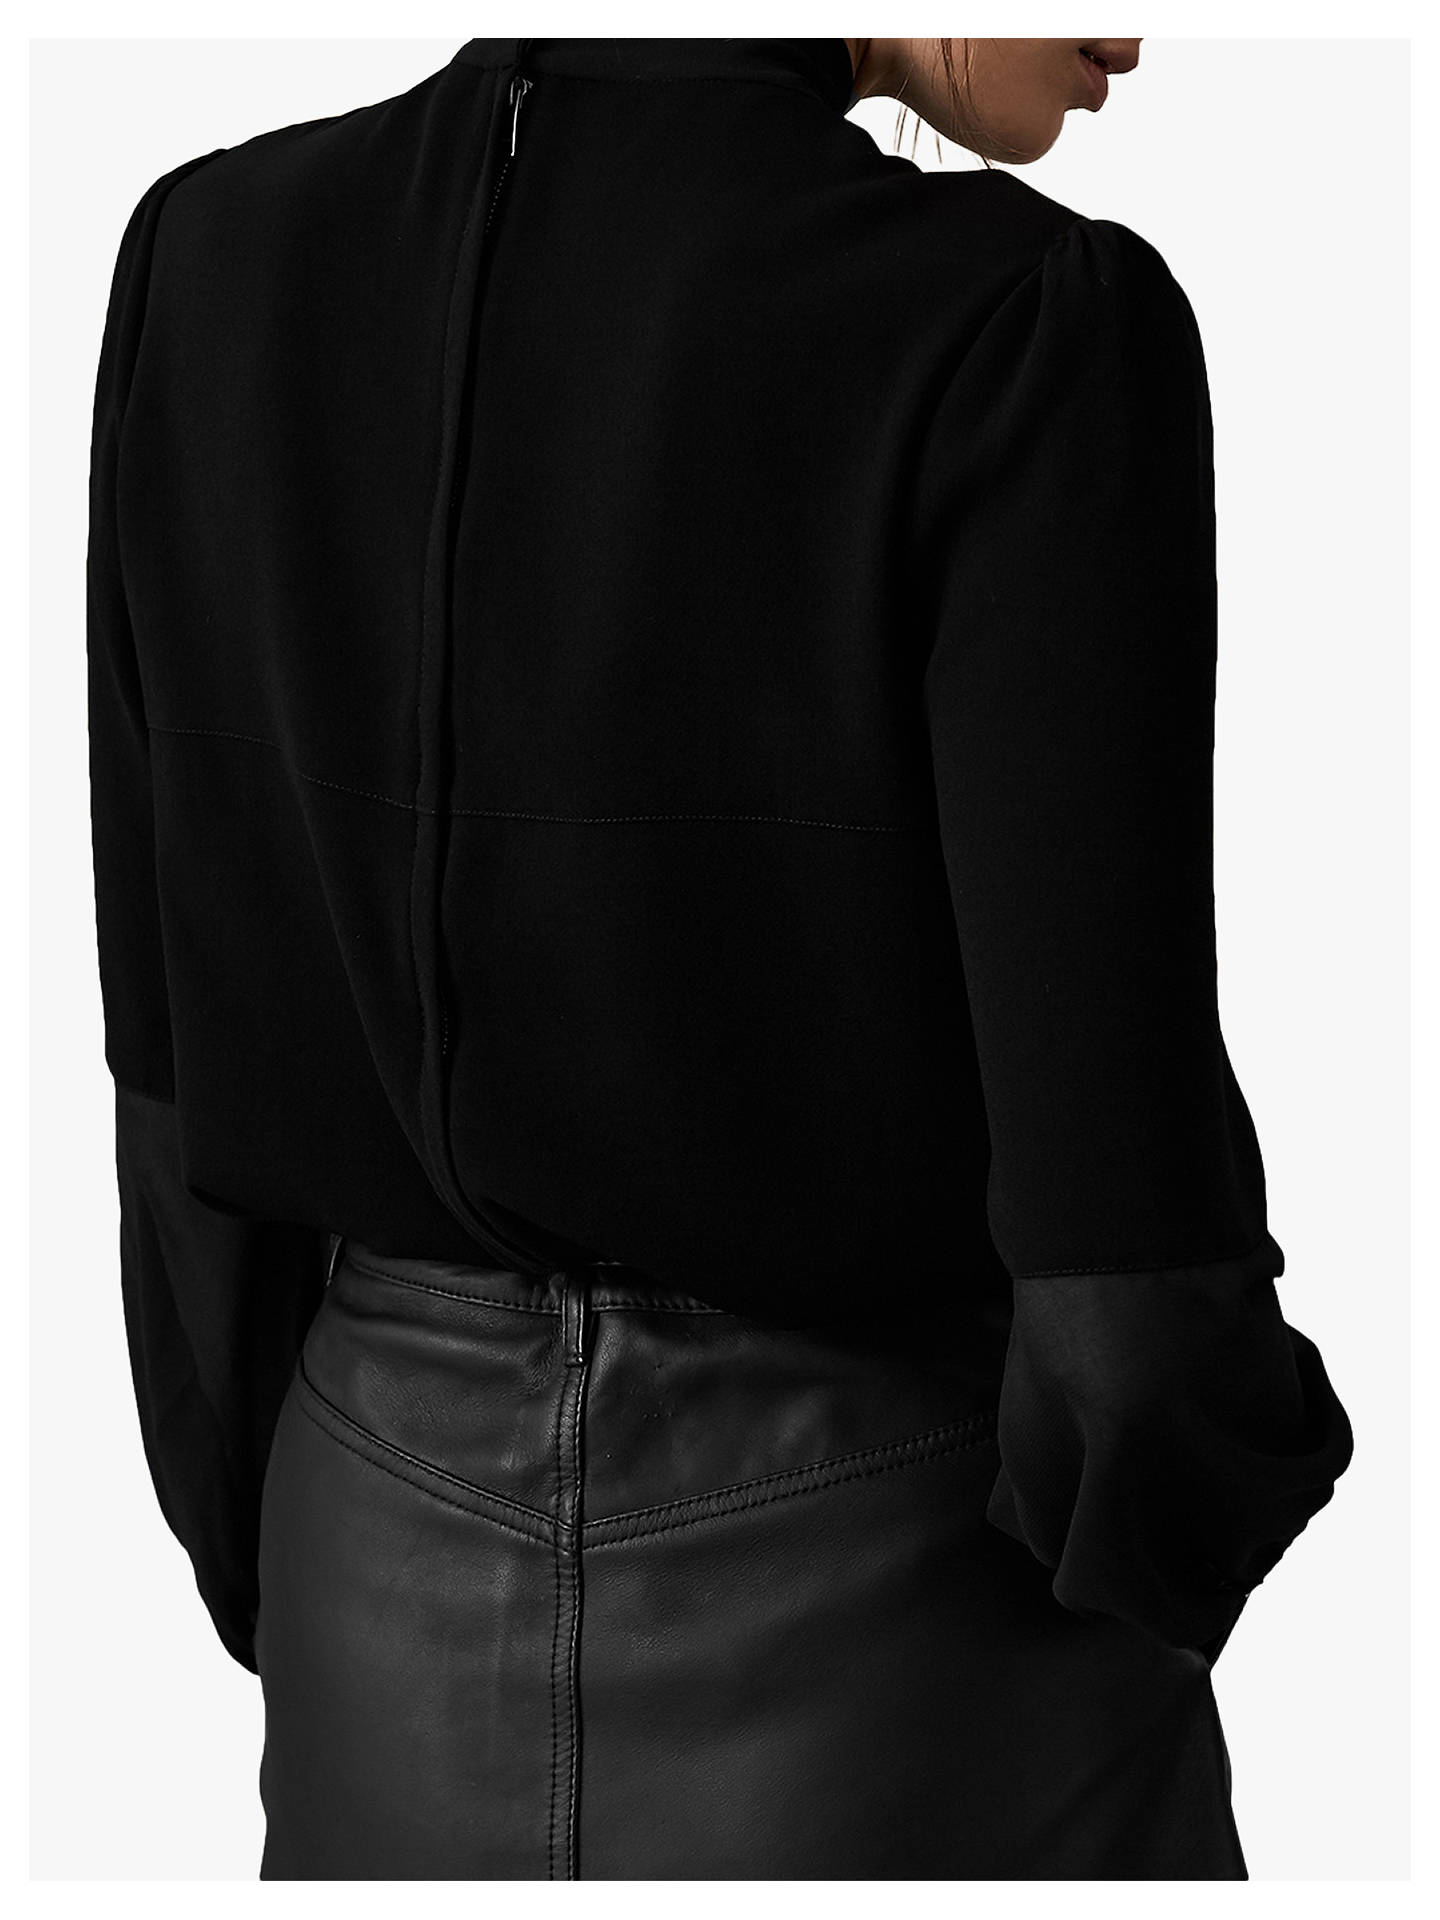 Buy Reiss Catalina Tie Neck Blouse, Black, 14 Online at johnlewis.com